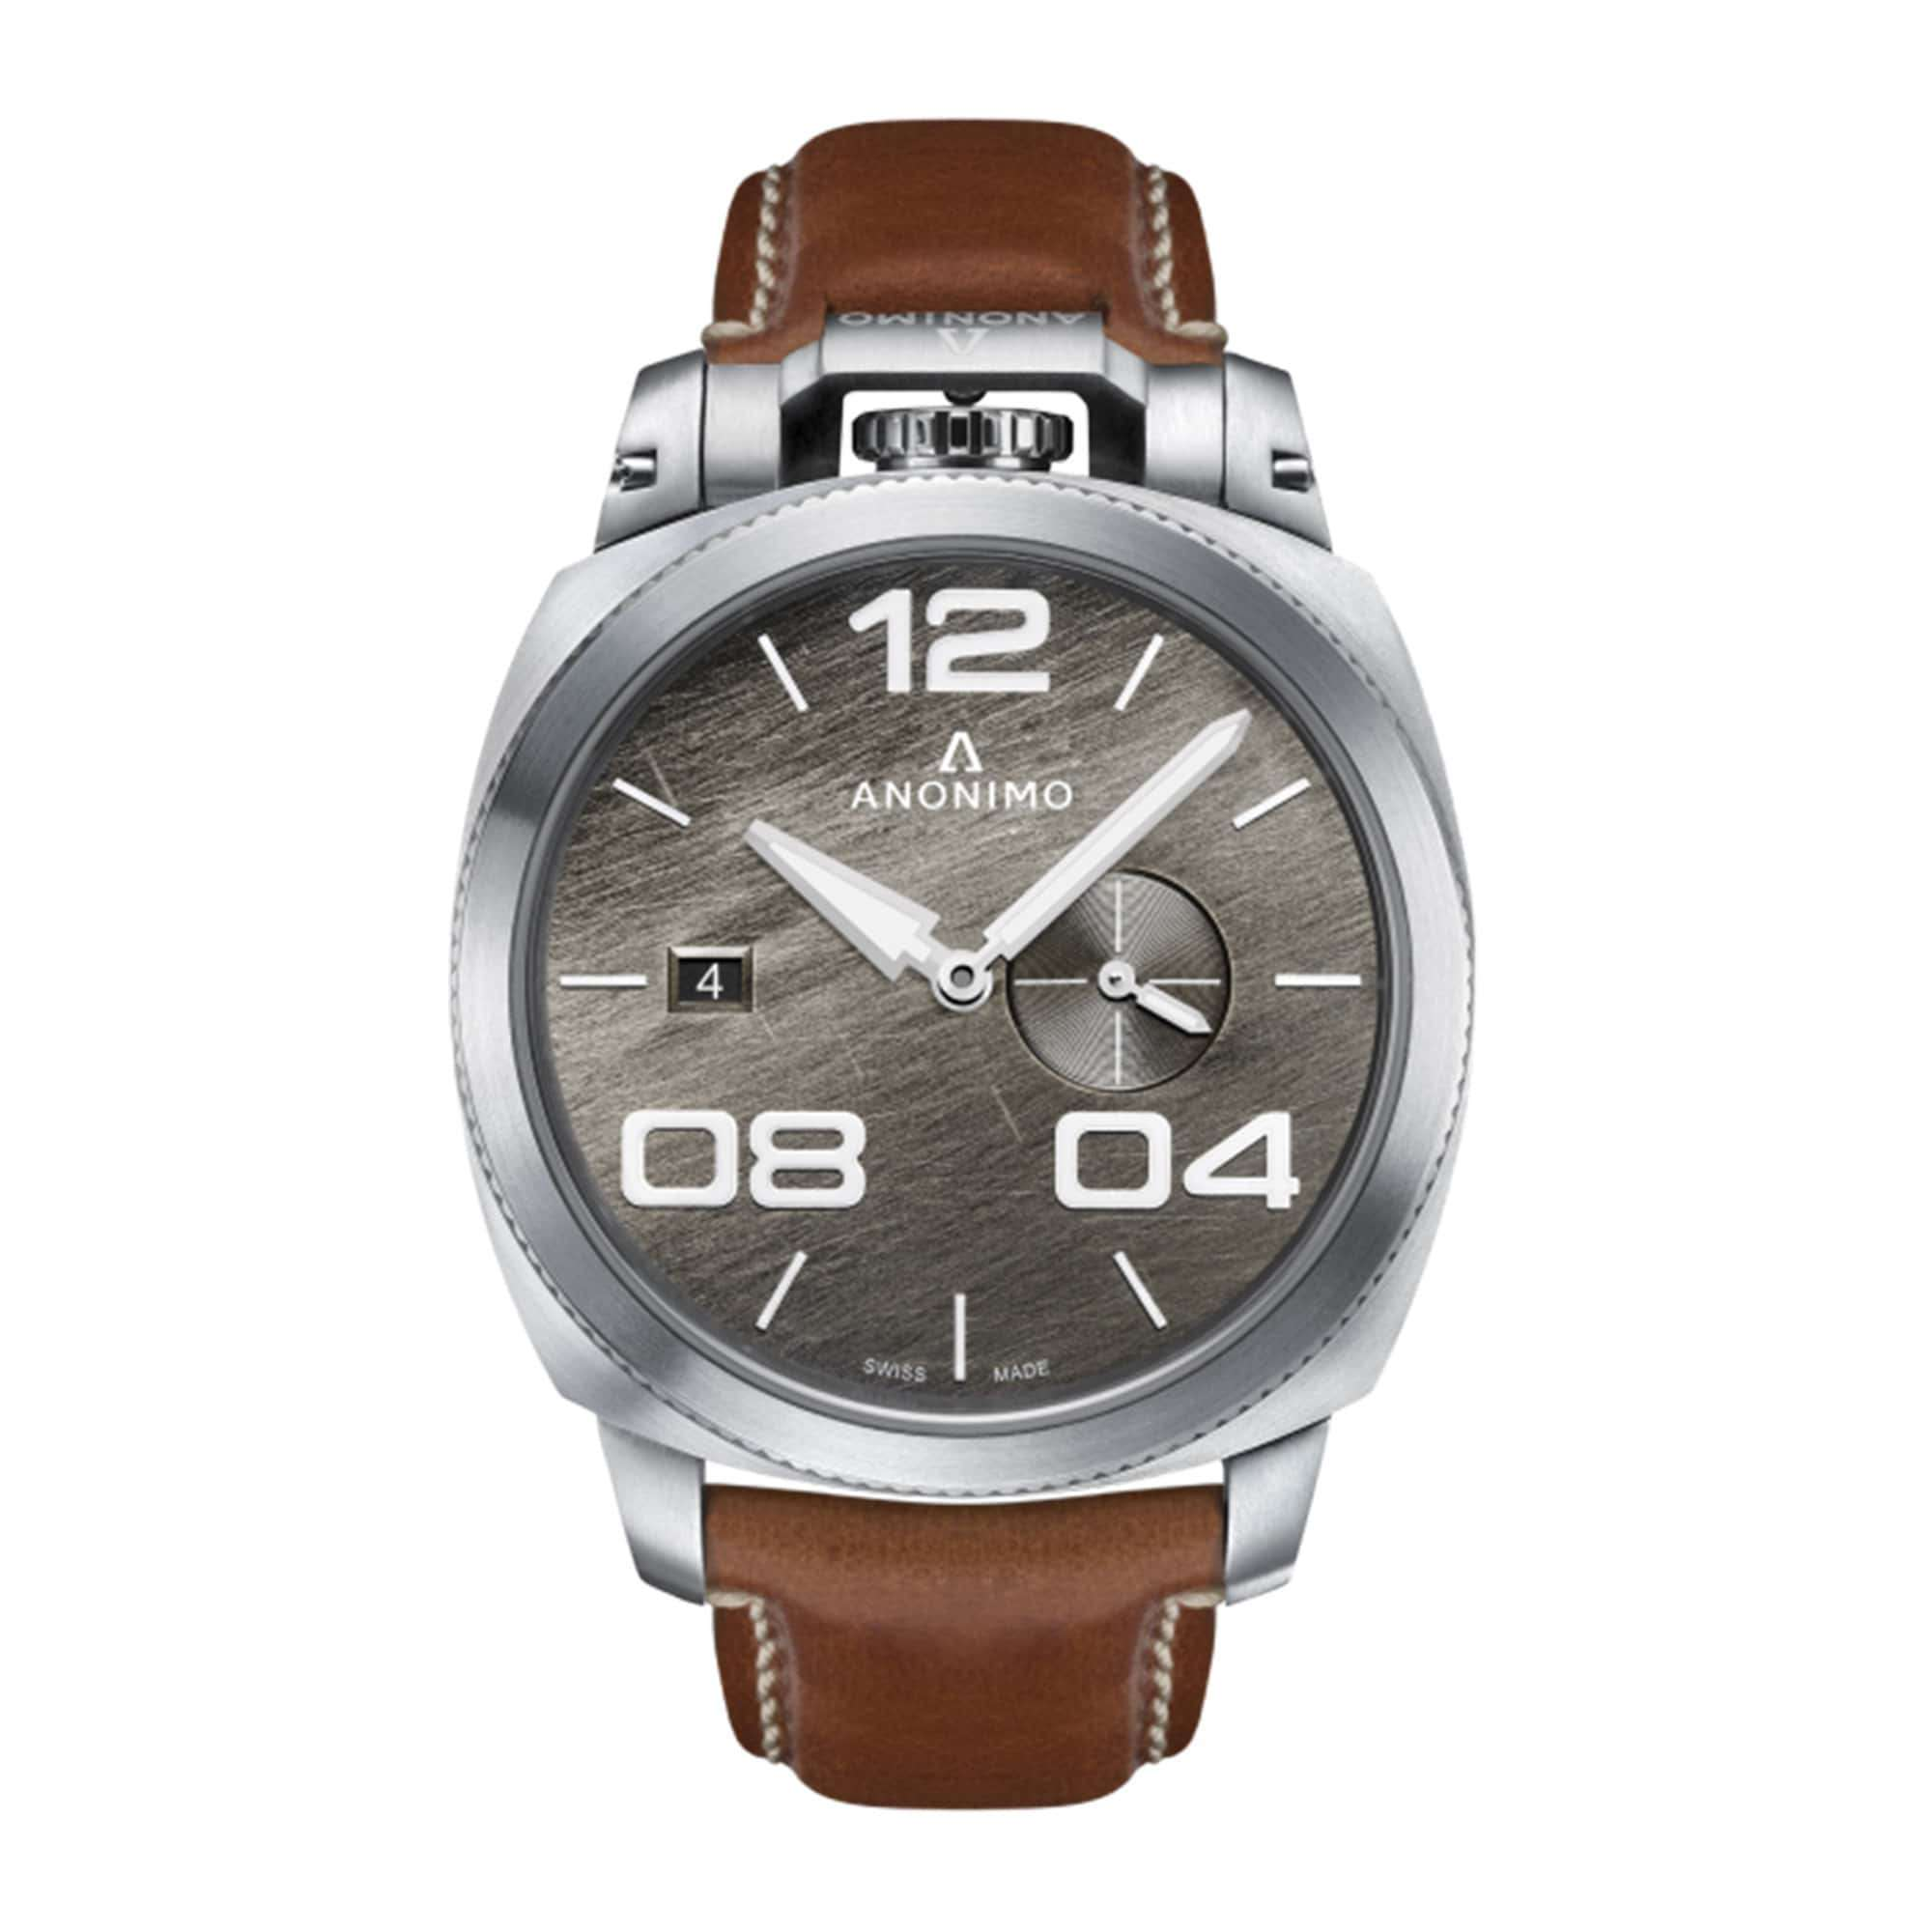 Anonimo Militare Automatic Stainless Steel AM-1020.01.002.A02 – Swiss Time